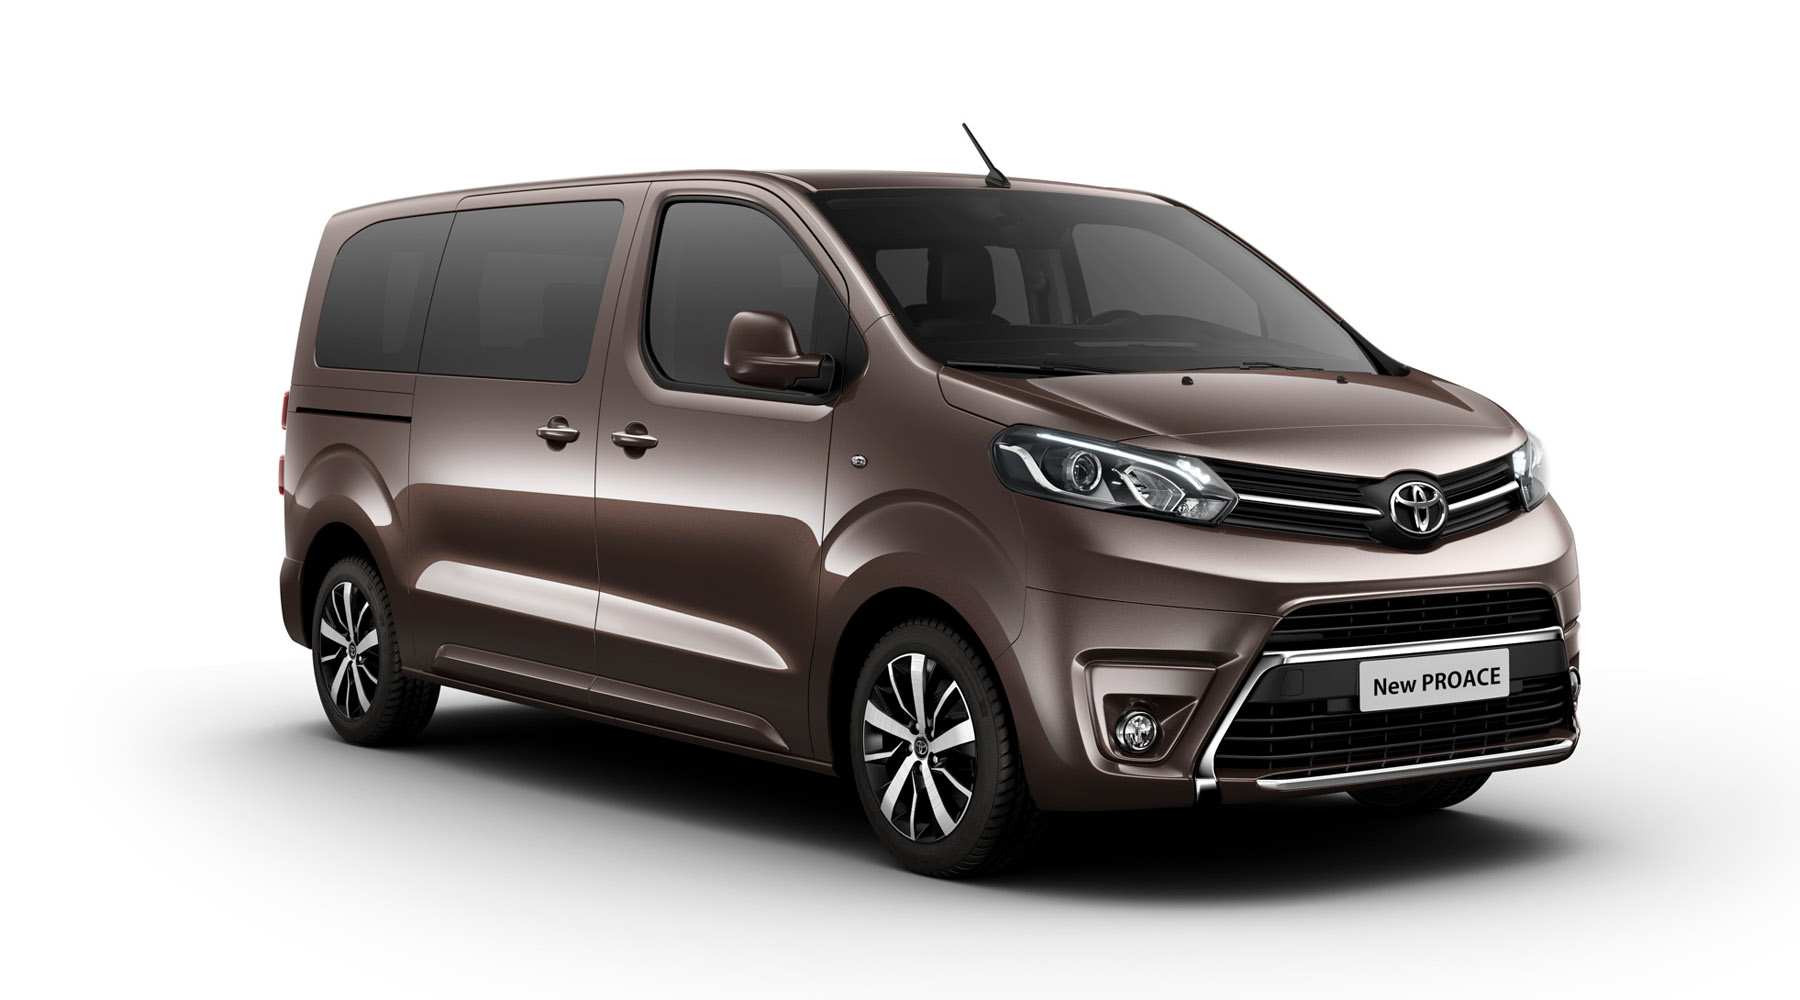 Toyota New Proace 2016